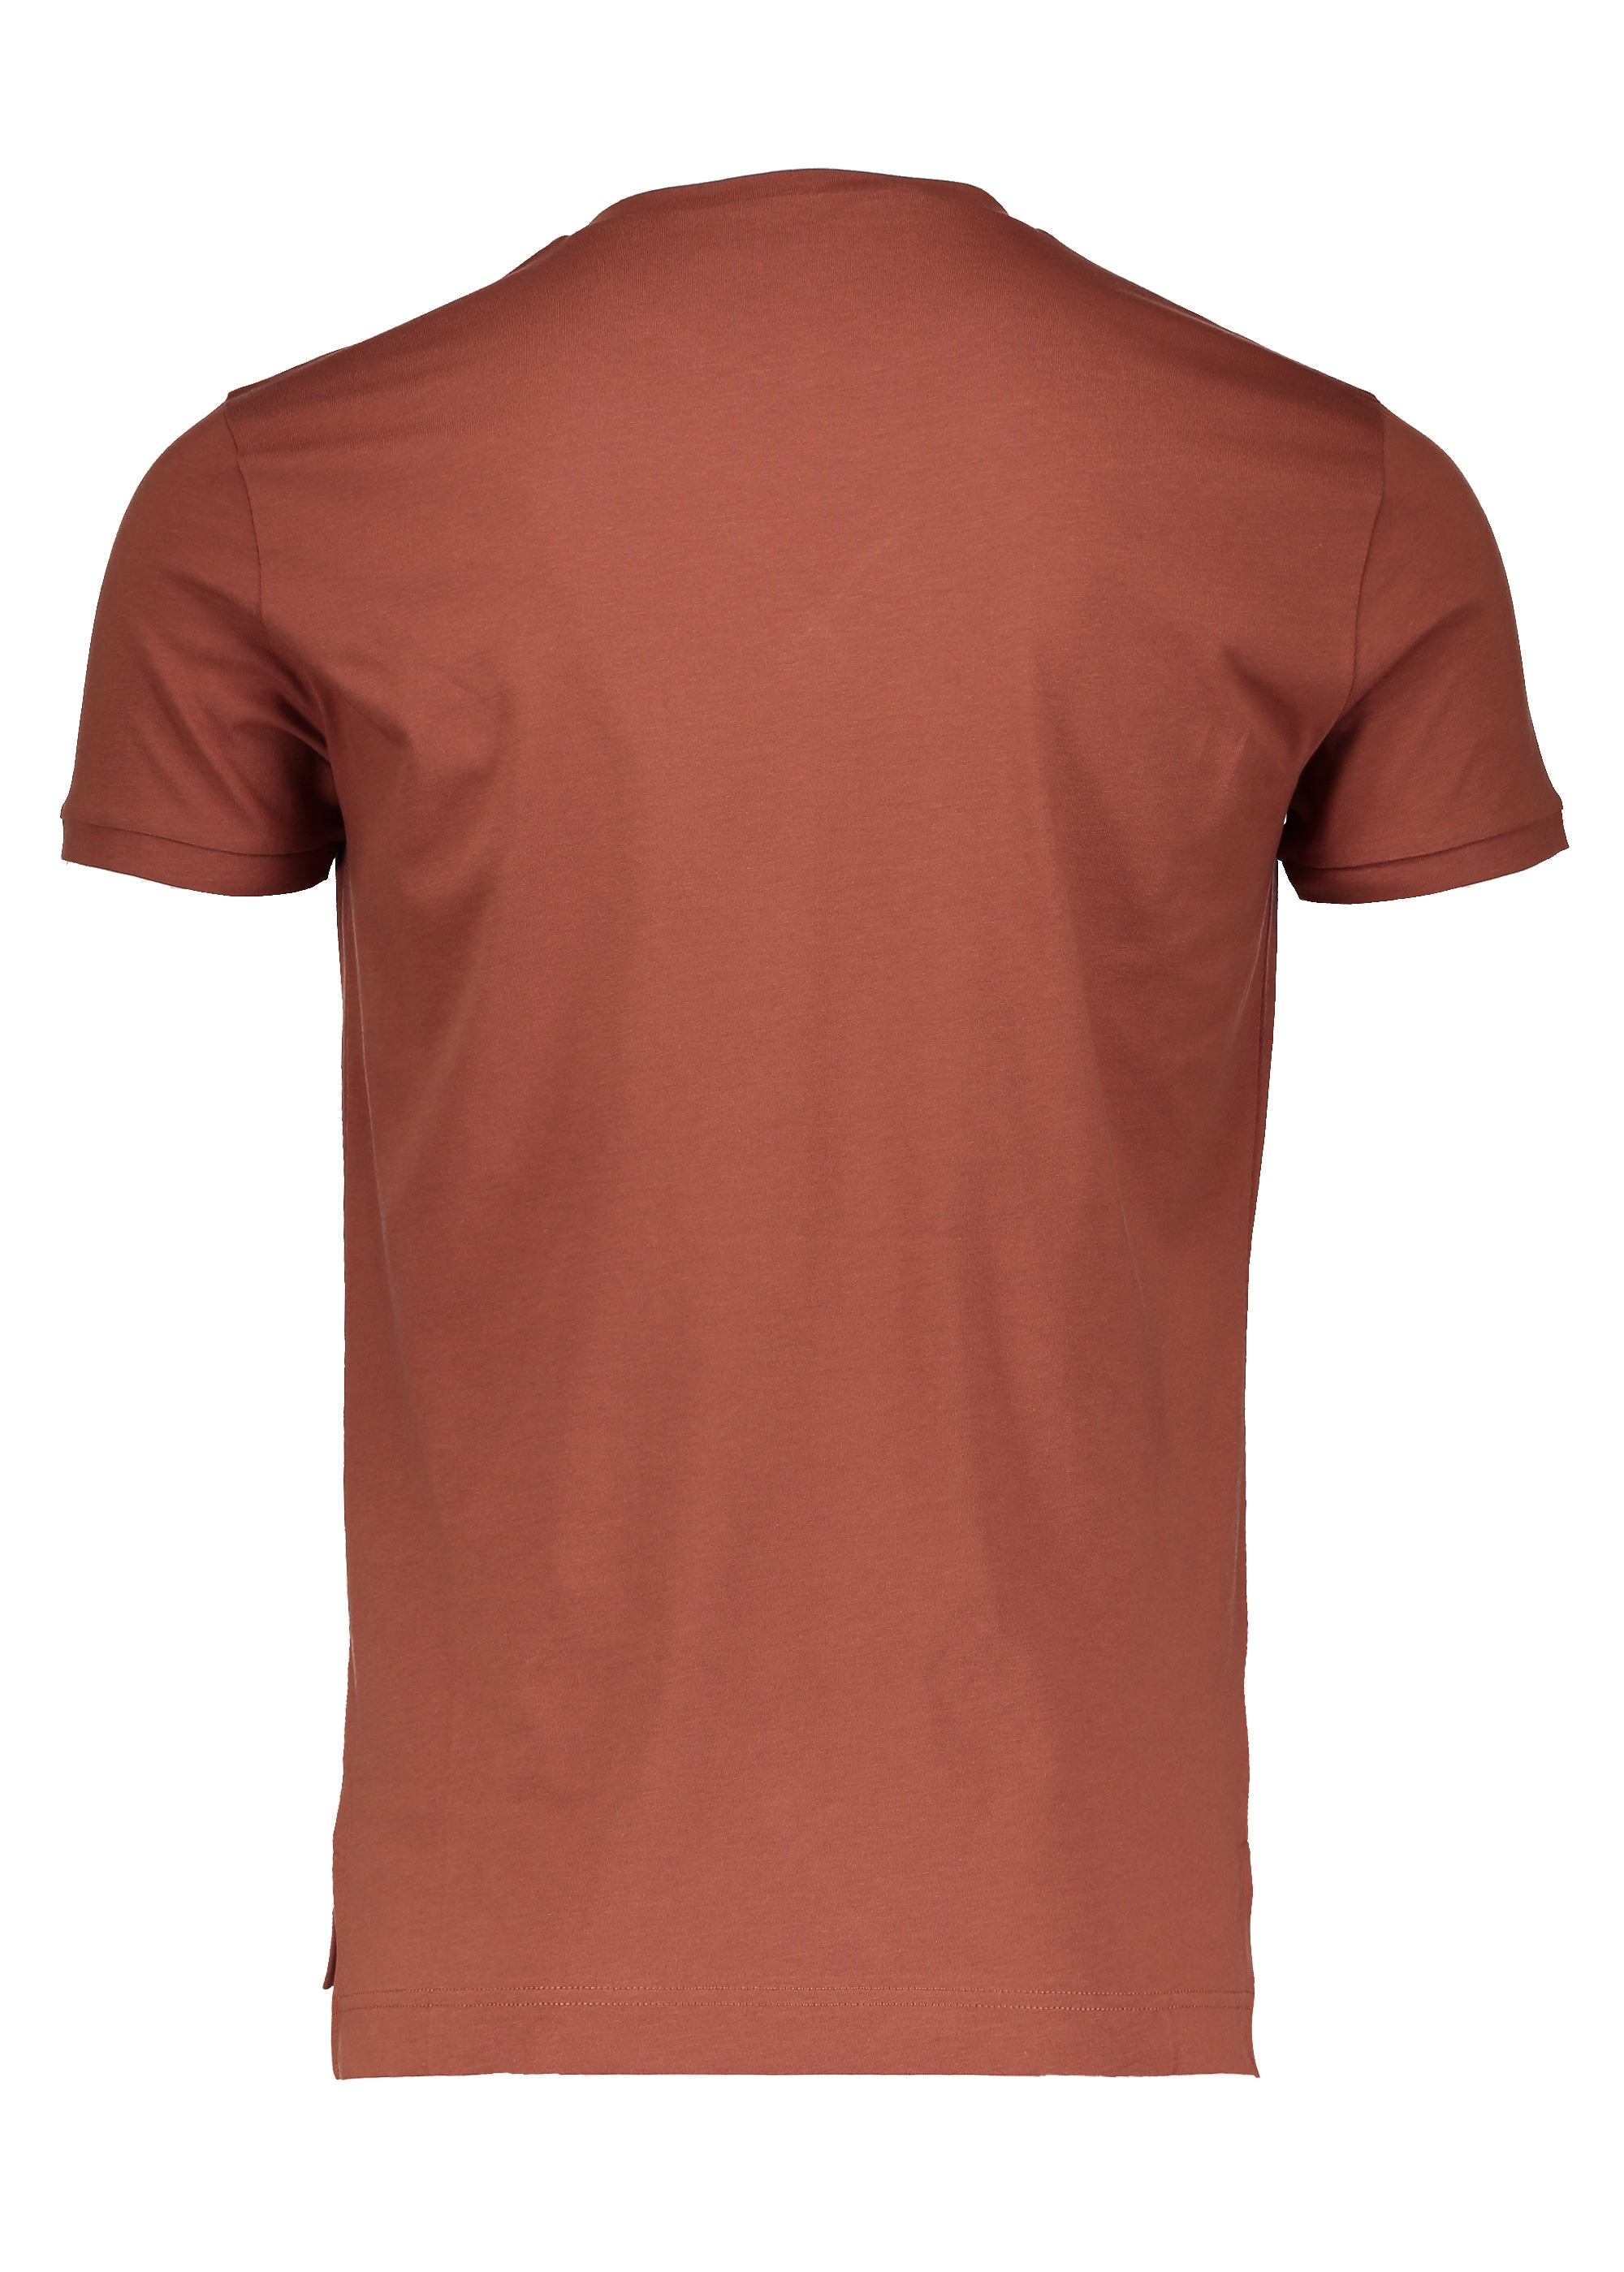 Embroidered Logo T Shirt Rust From Triads Uk